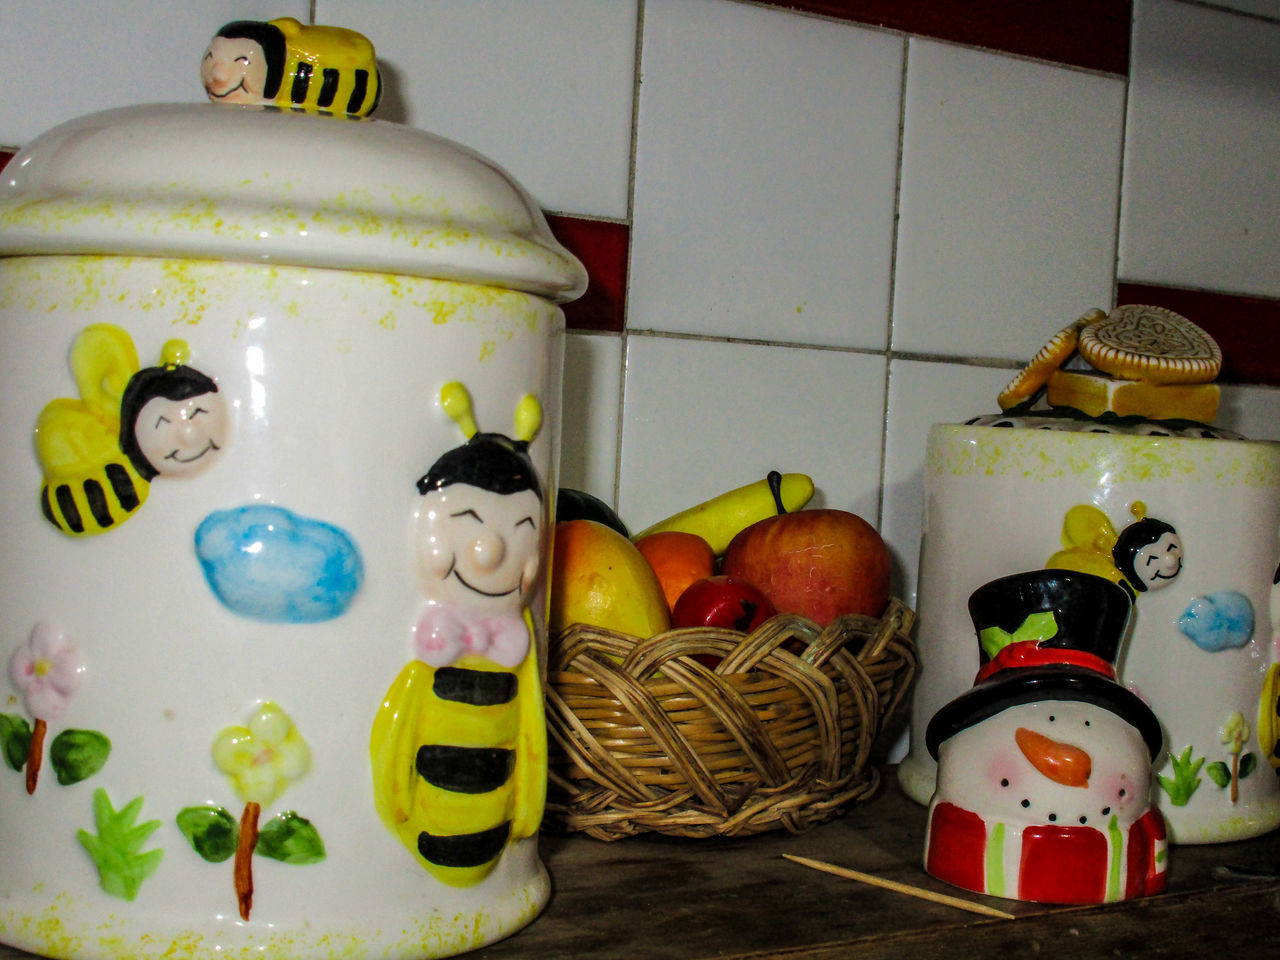 Apple Art And Craft Banana Bees Bees And Flowers Canister Ceramic Close-up Creativity Flowers Fruits Gastronomy Indoors  Jack O Lantern Jars  Kitchen Multi Colored No People Objects Ornaments Peach Red Sunflowers Wall Wood